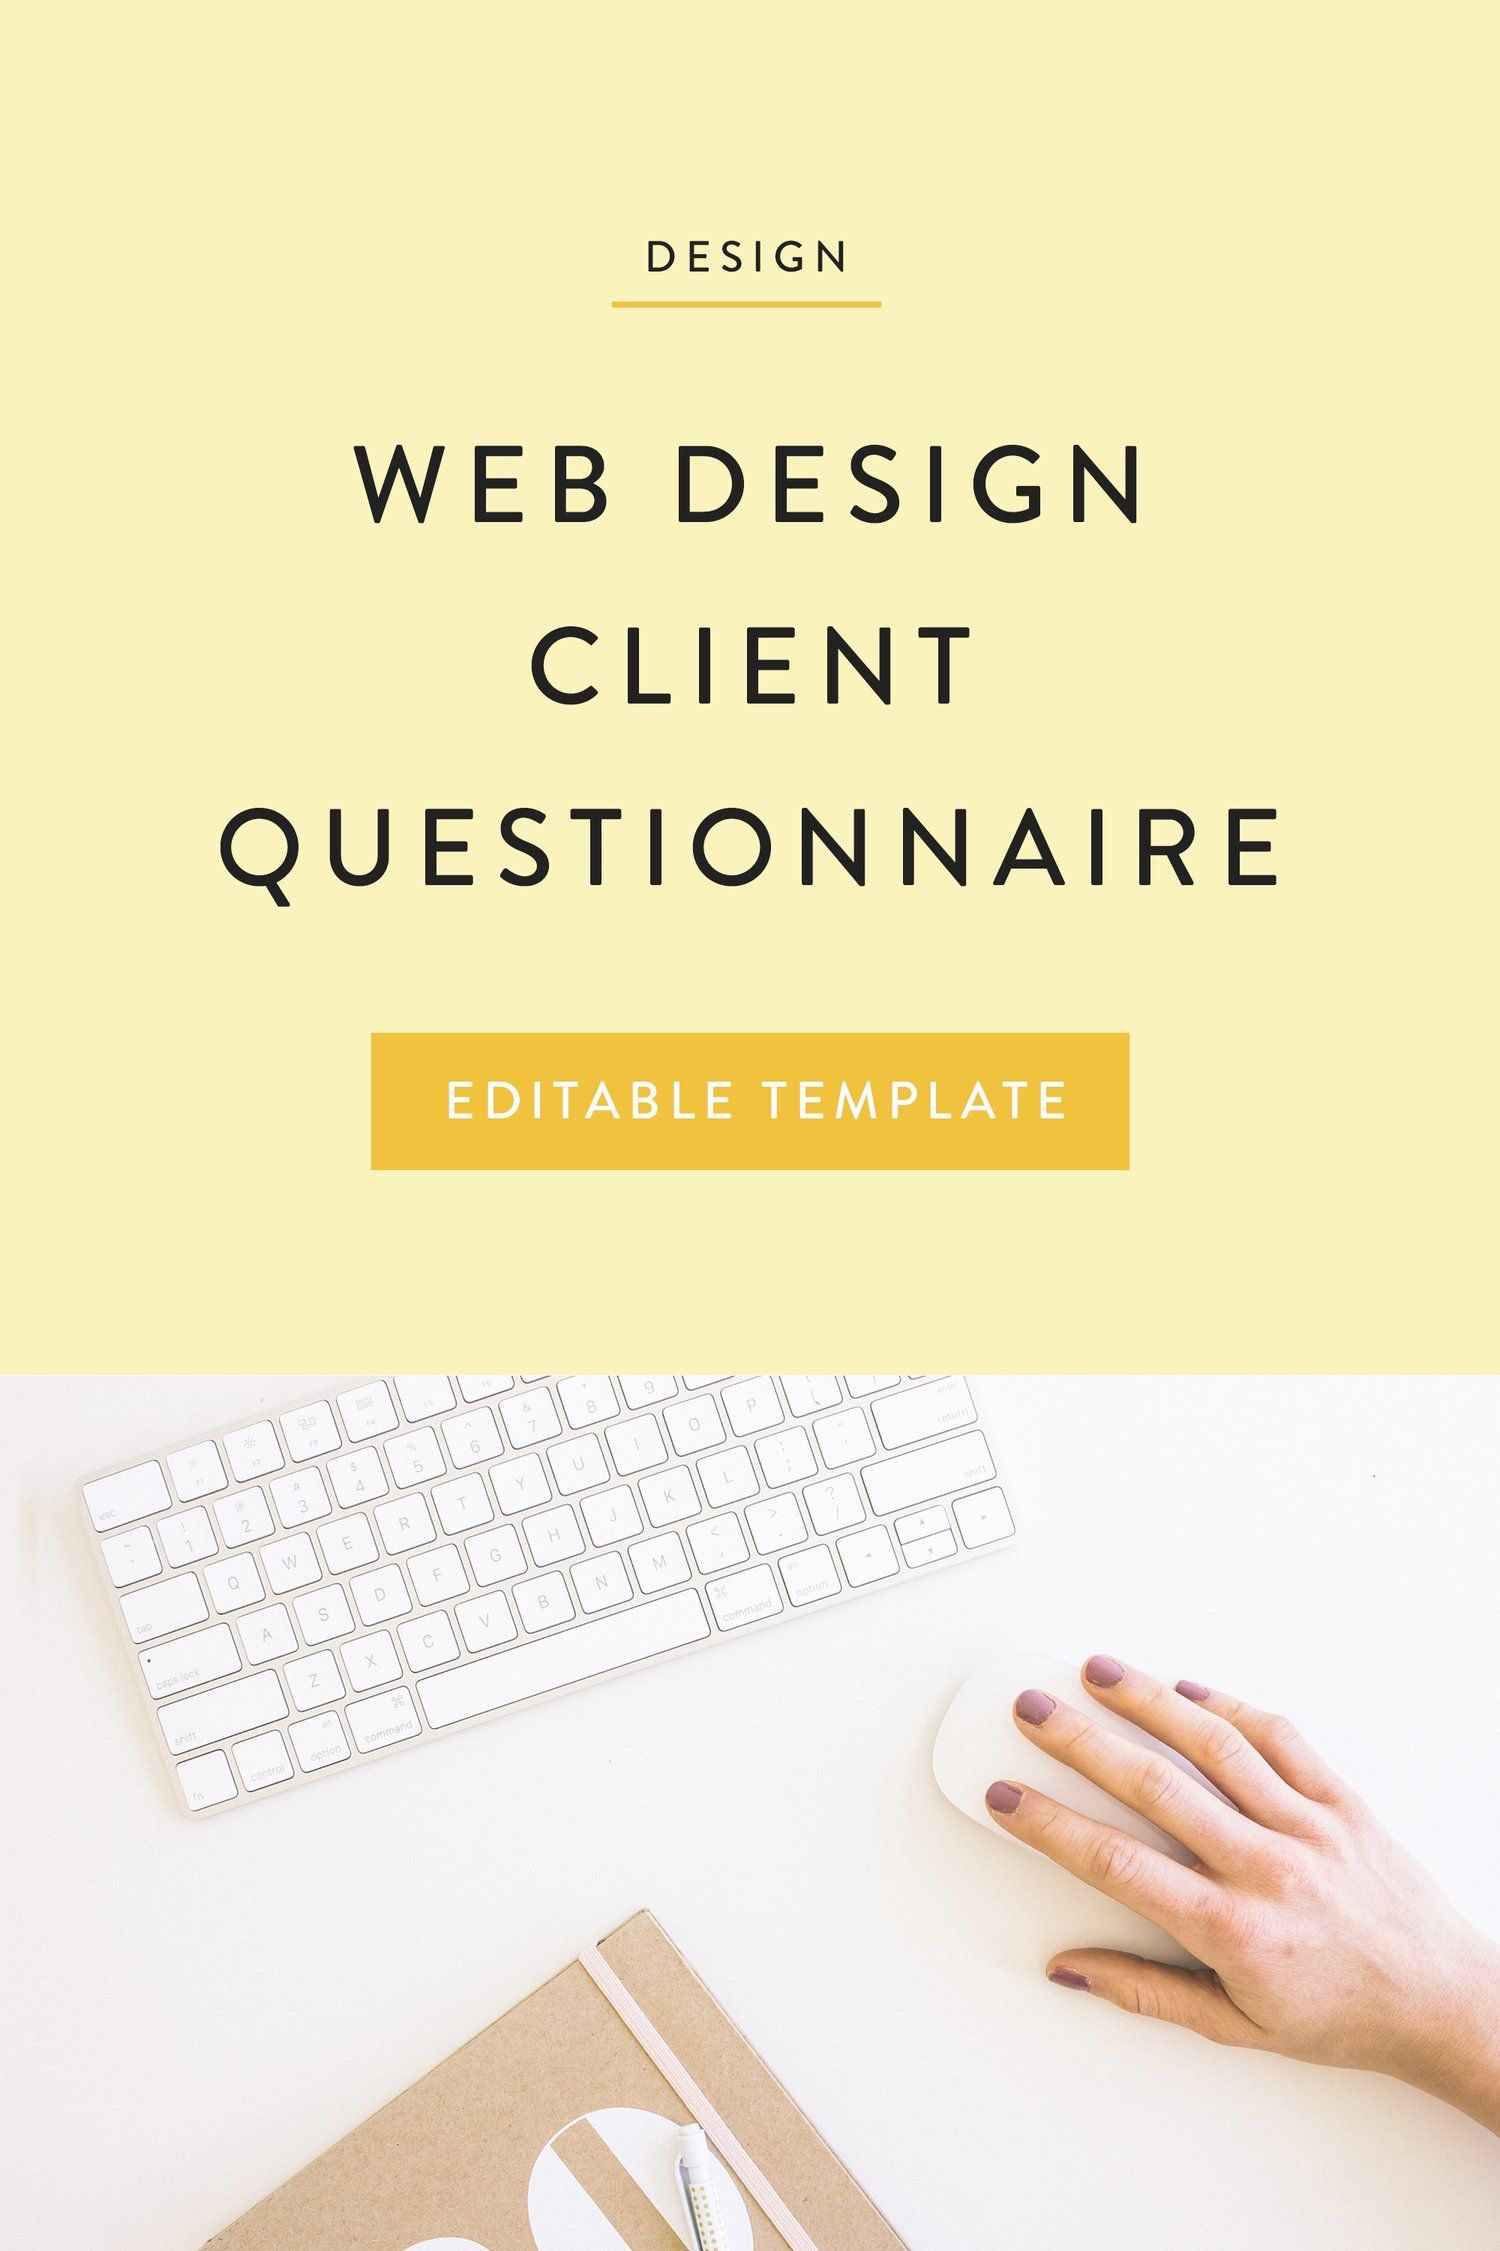 Client Questionnaire The Busy Bee Client Questionnaire Design Clients Questionnaire Template